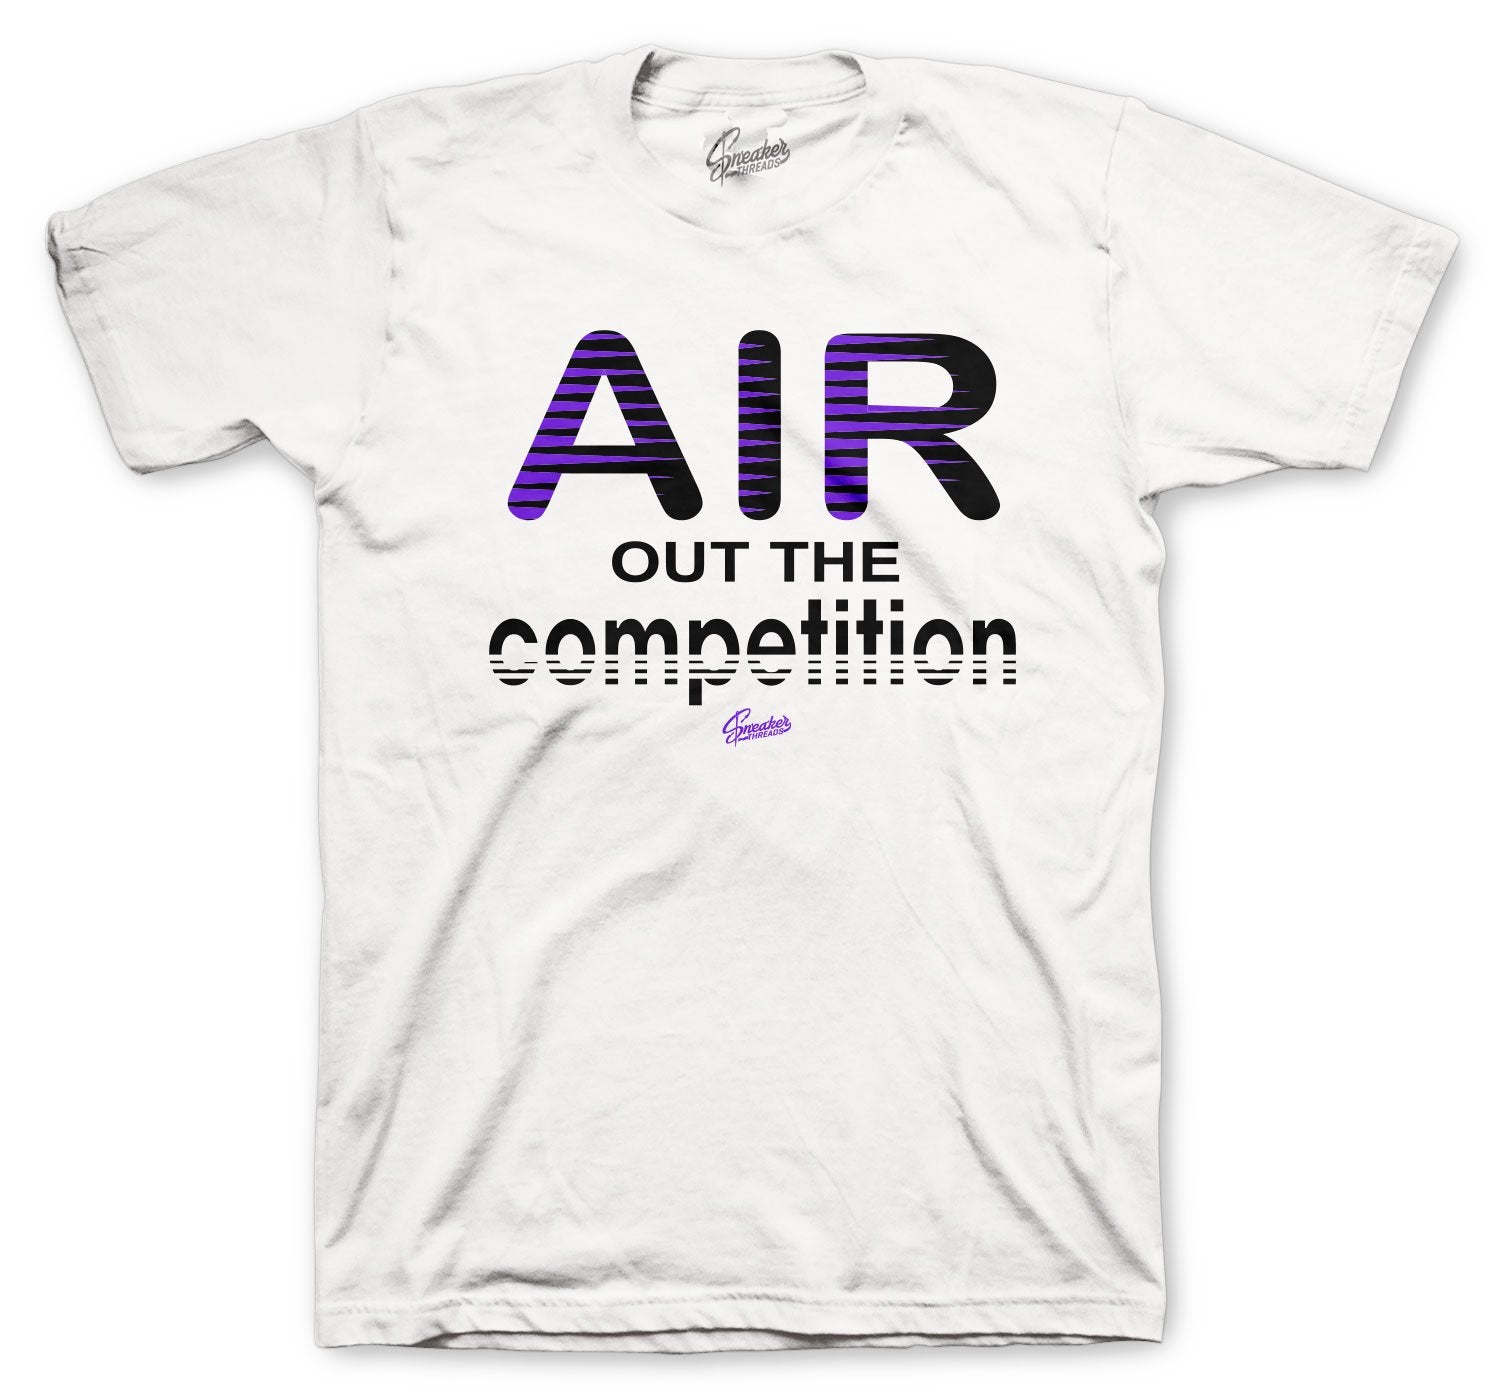 white shirt collection has matching sneaker collection air max hyper grape 90s